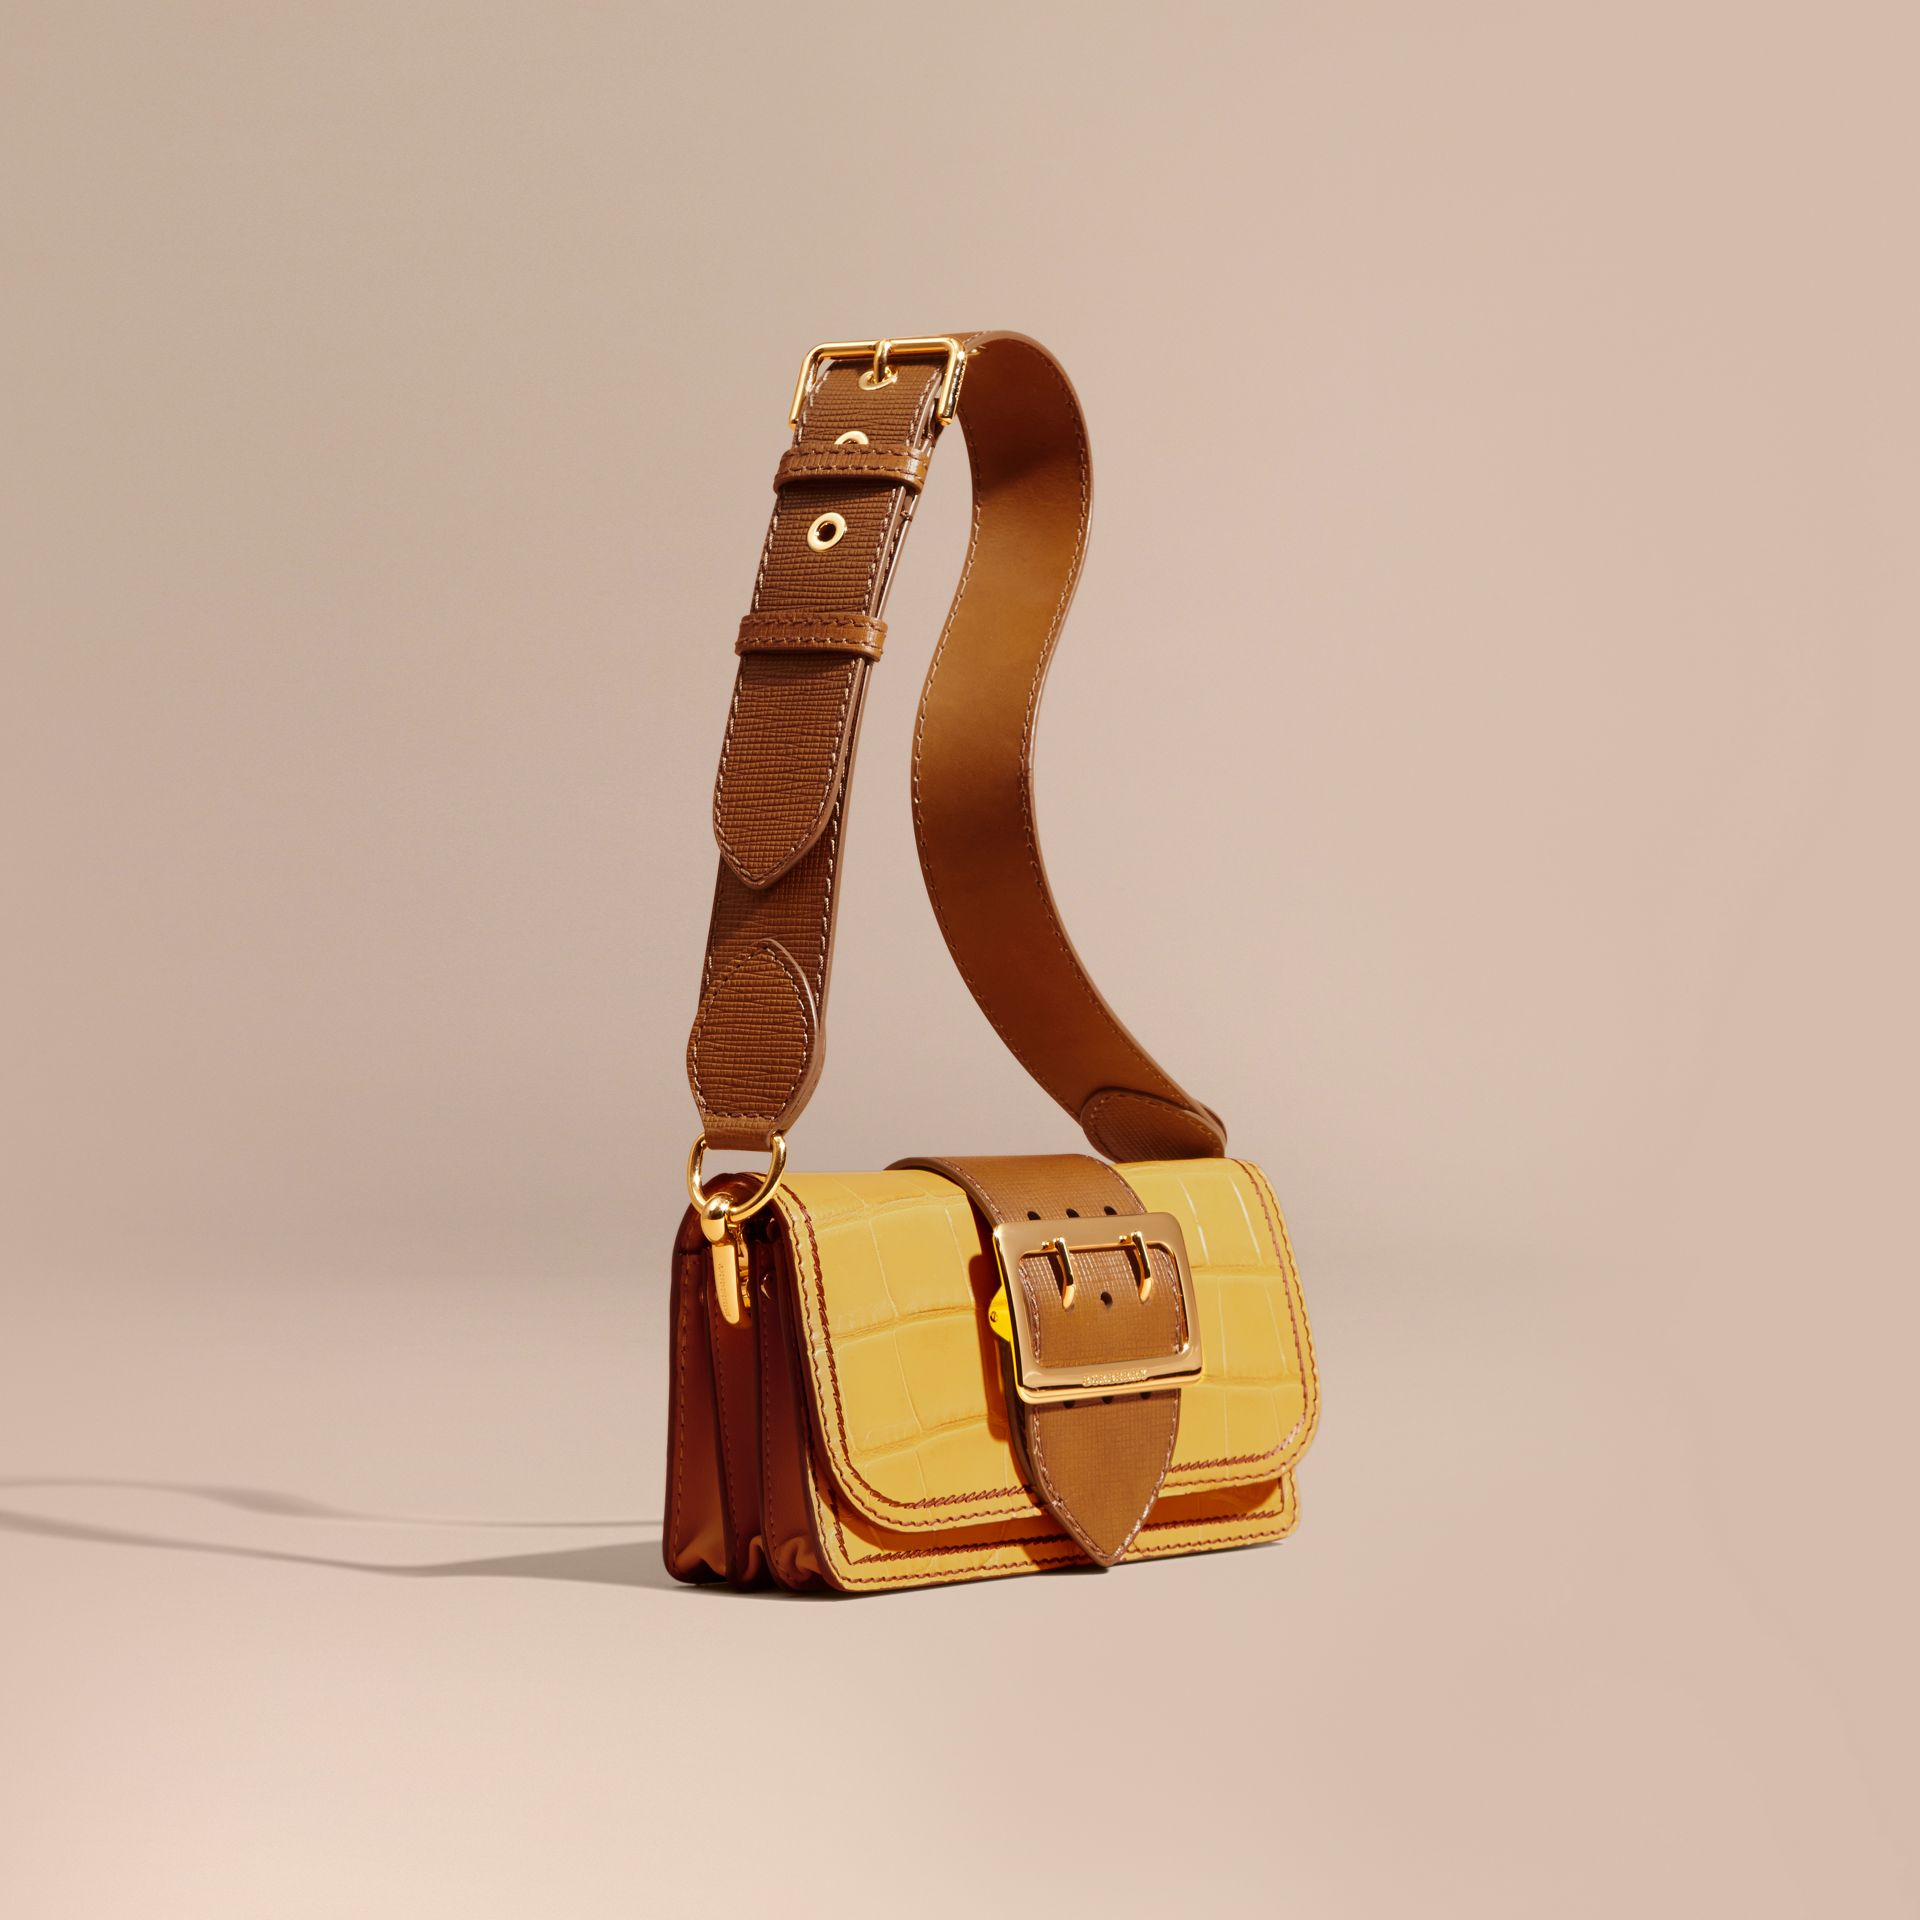 The Small Buckle Bag in Alligator and Leather Citrus Yellow / Tan - gallery image 1